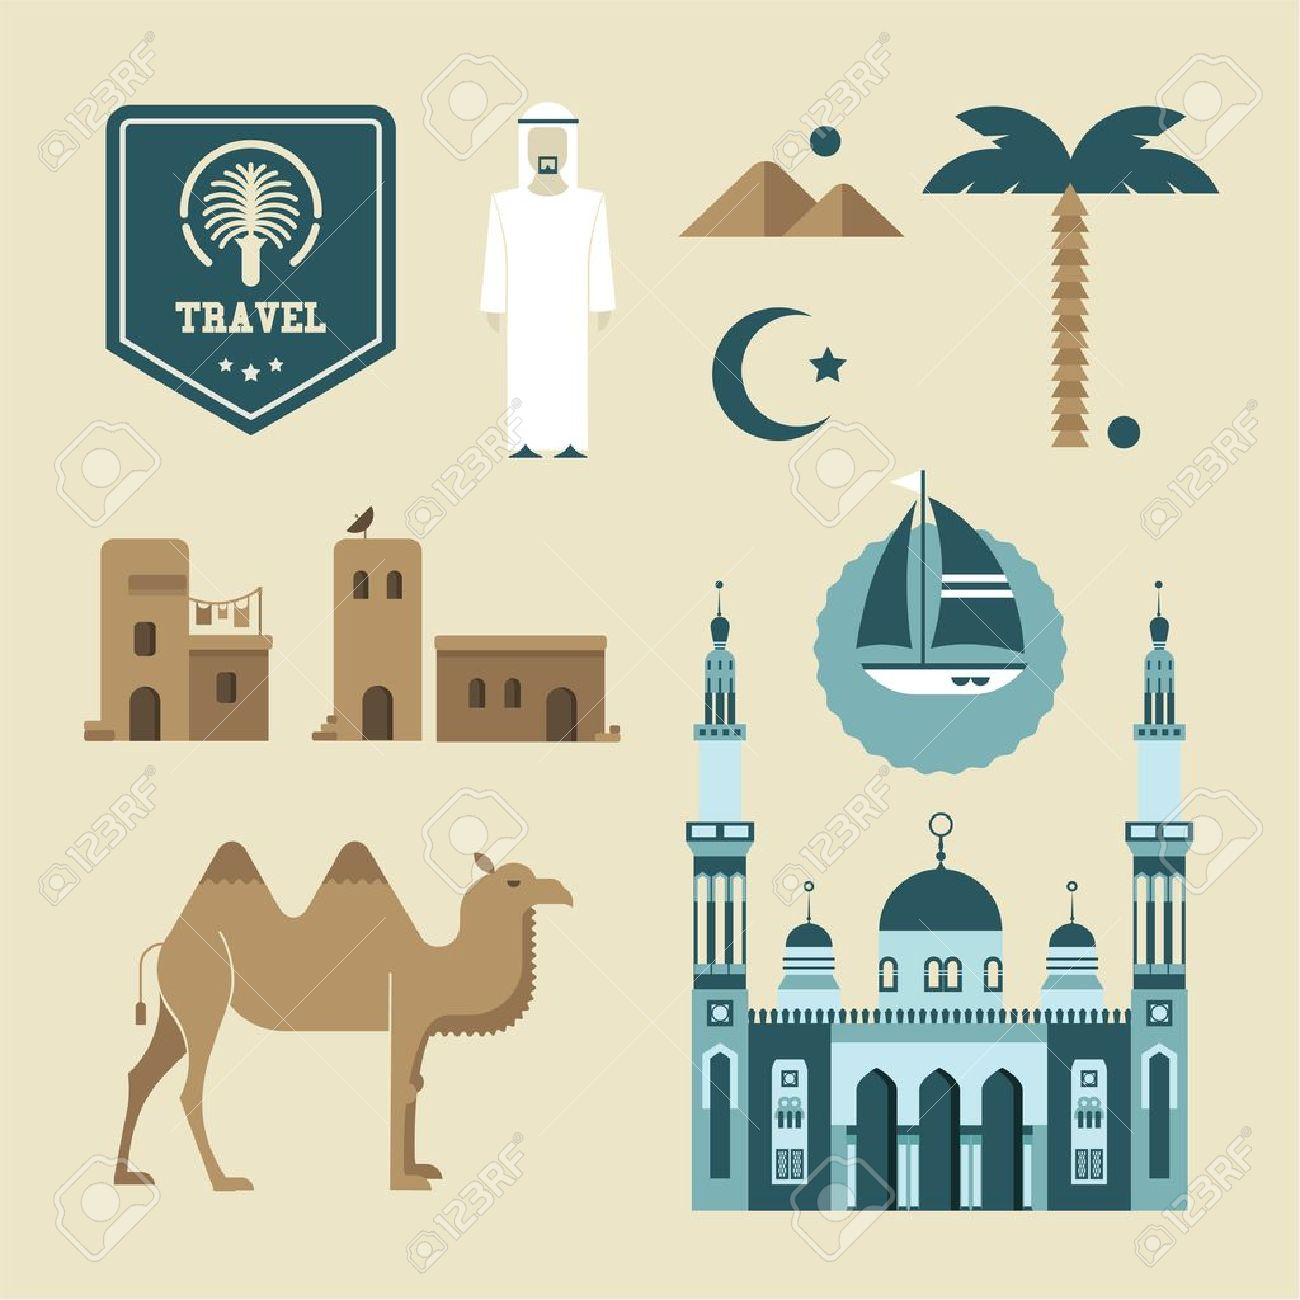 2,558 Arabic Dress Stock Vector Illustration And Royalty Free.